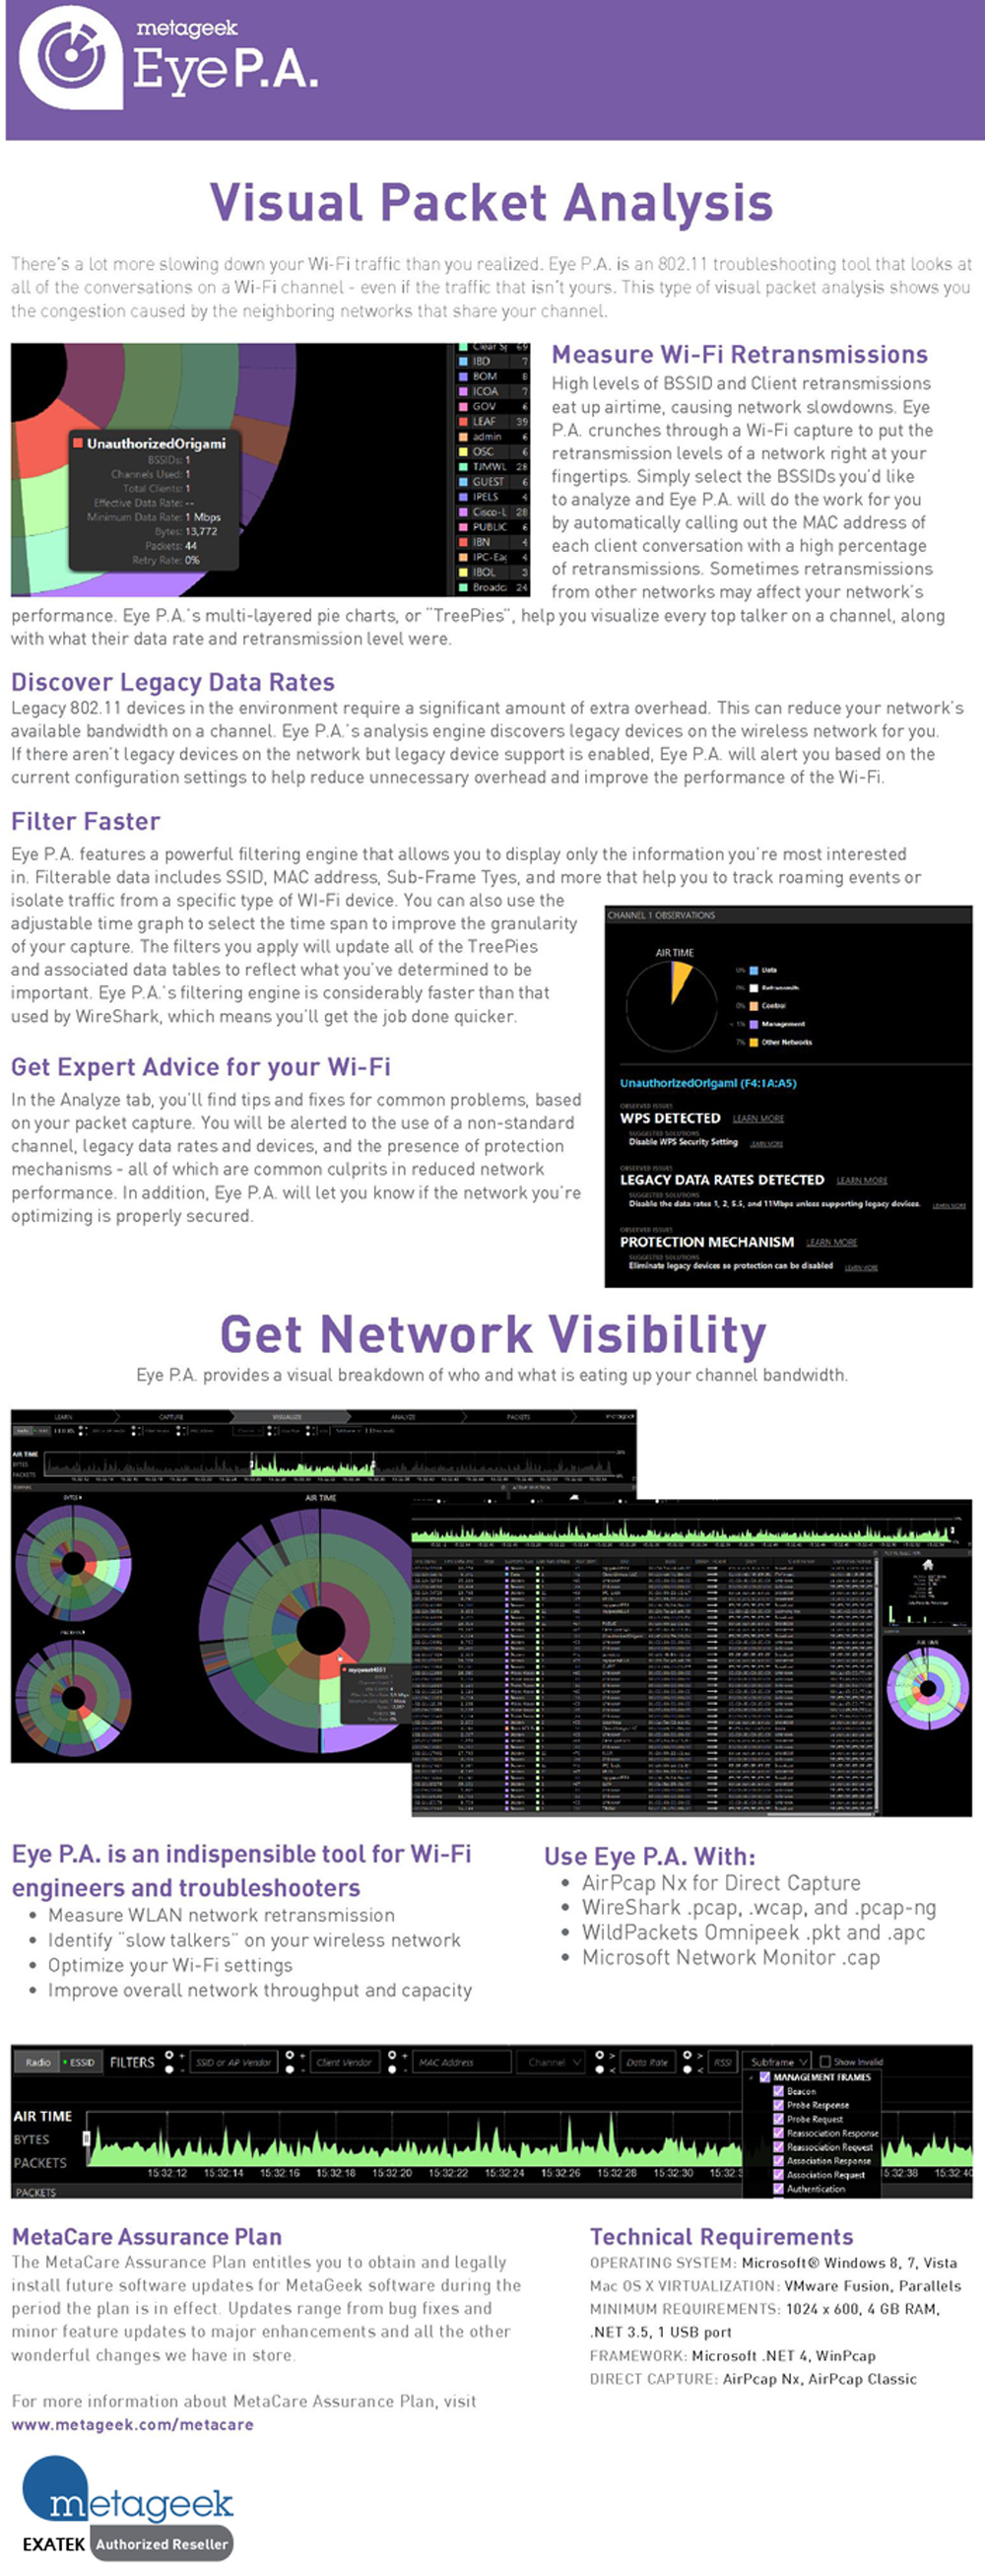 MetaGeek Eye P.A. -Layer2 WiFi Packet Analyzer,Eye P.A.